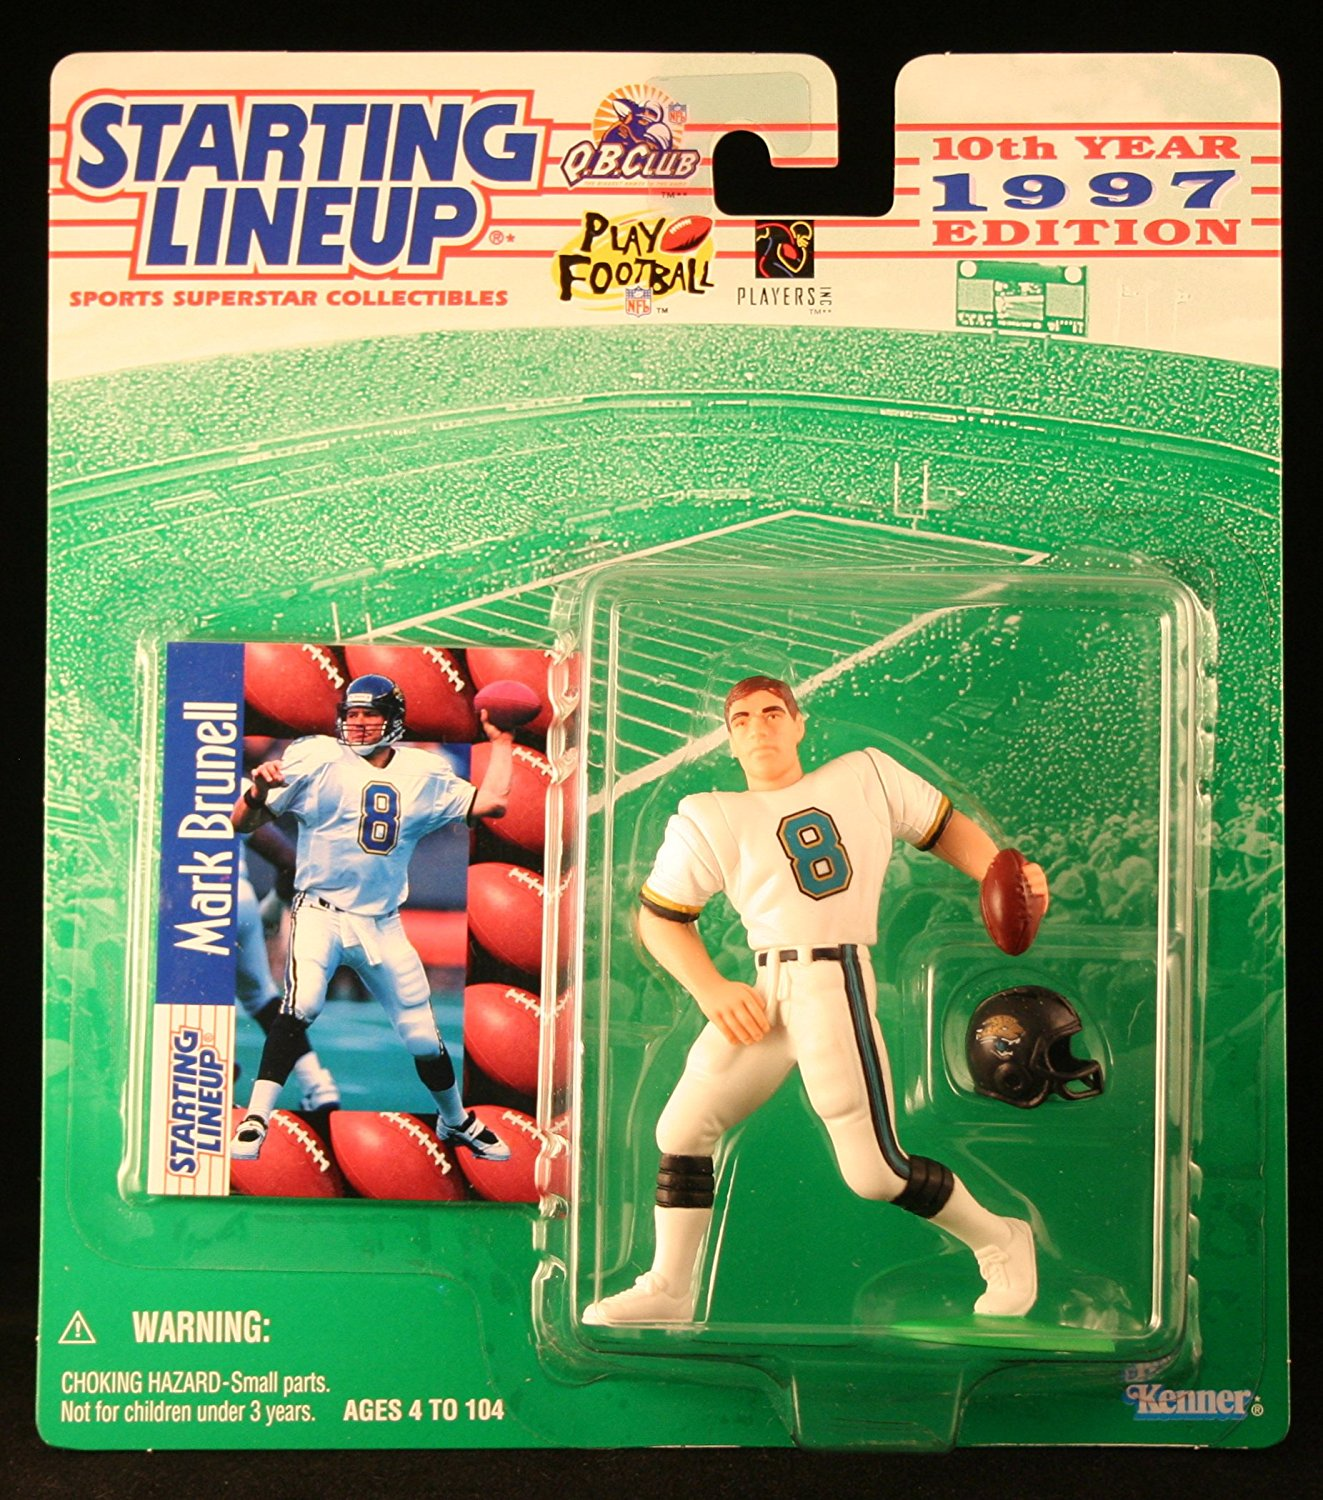 MARK BRUNELL / JACKSONVILLE JAGUARS 1997 NFL Starting Lineup Action Figure & Exclusive NFL Collector Trading Card